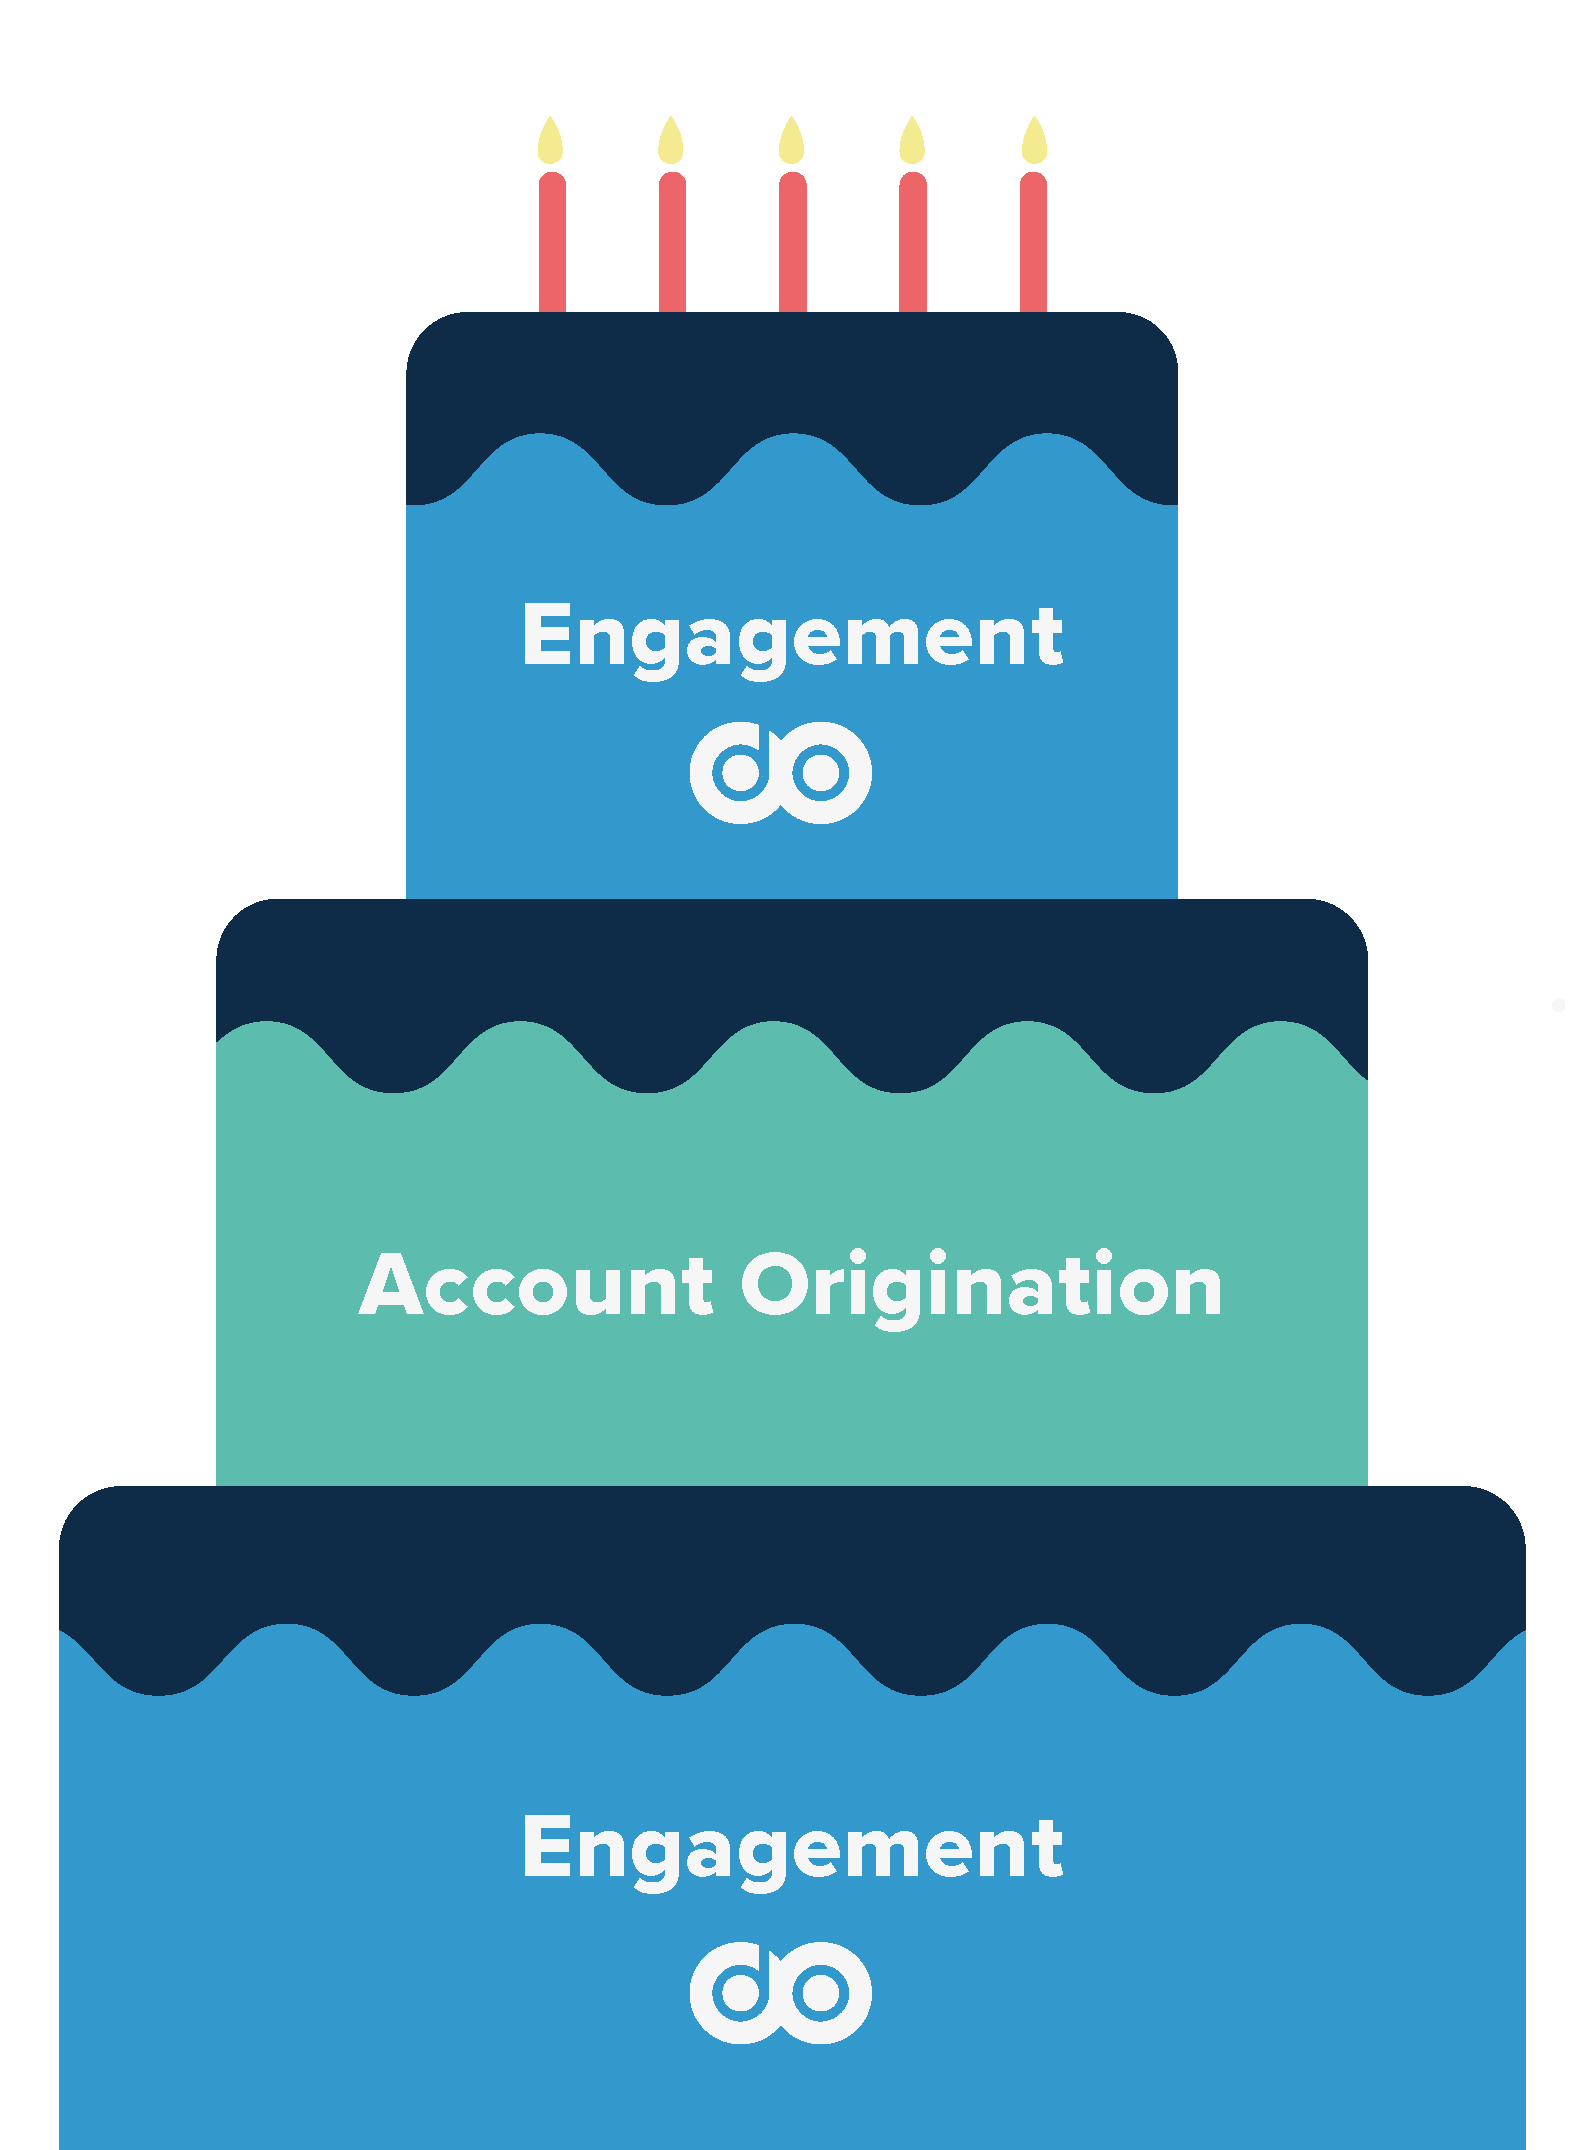 Layer cake representing the digital engagement layer